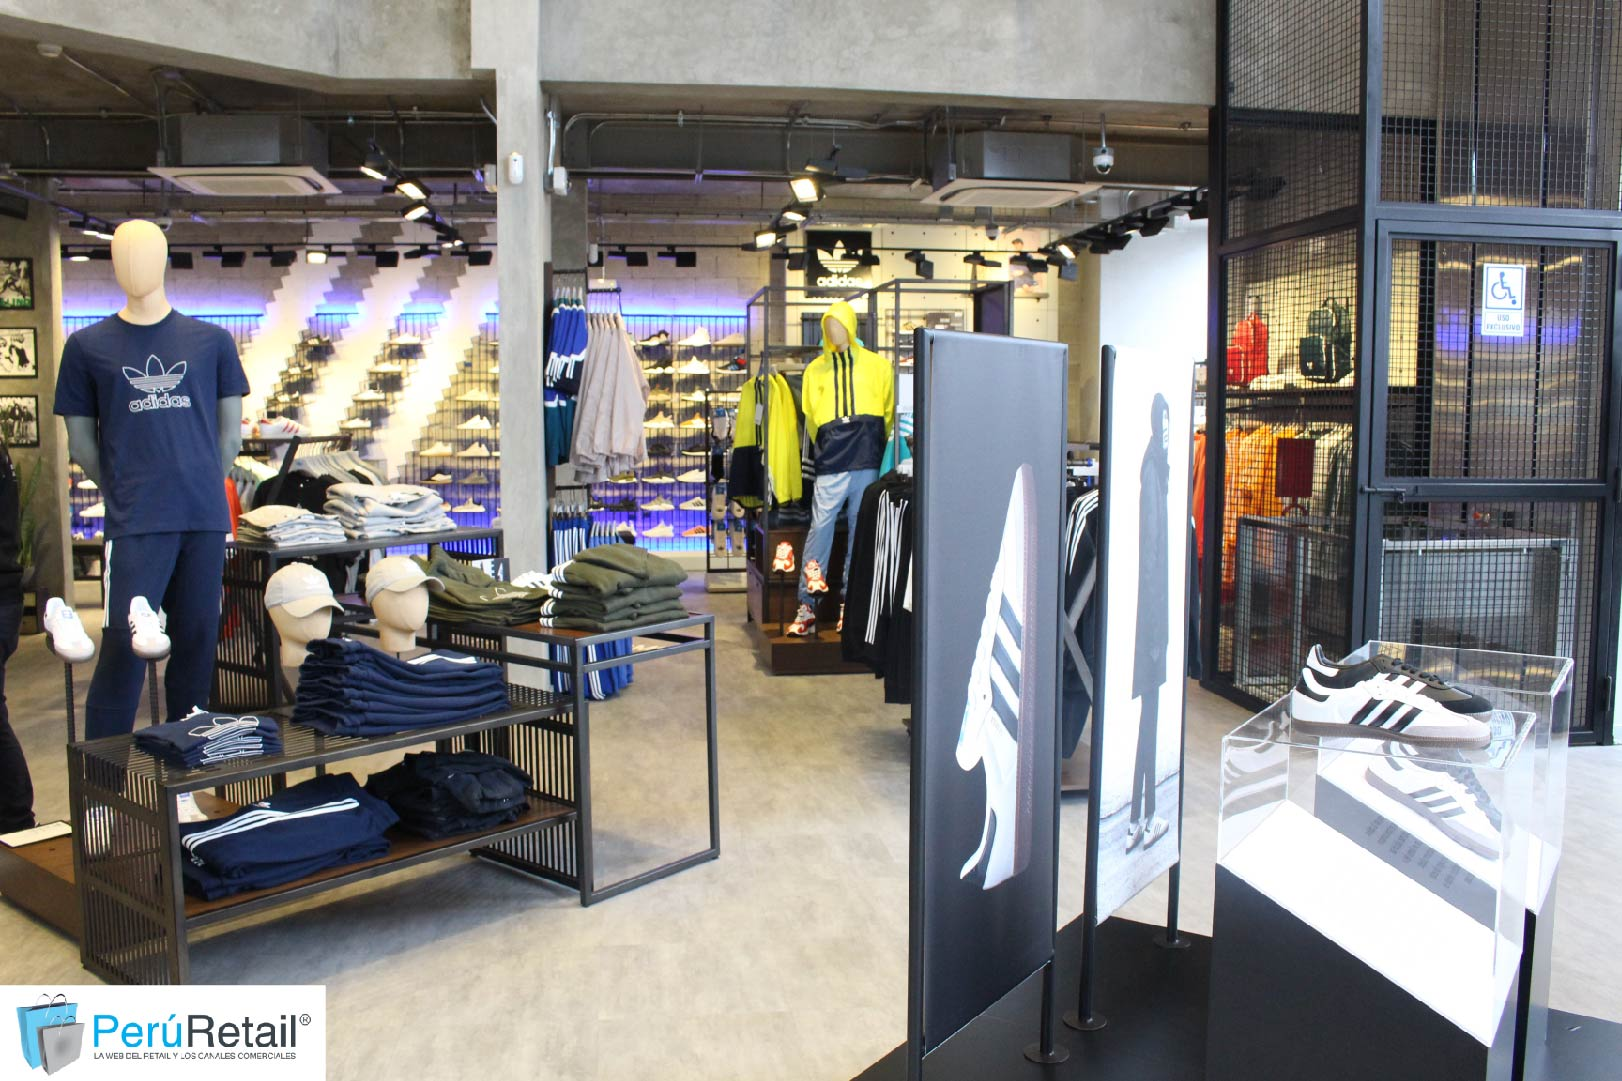 Adidas 2 2 - Perú: Adidas Originals abre su primera tienda Fashion Destination Door